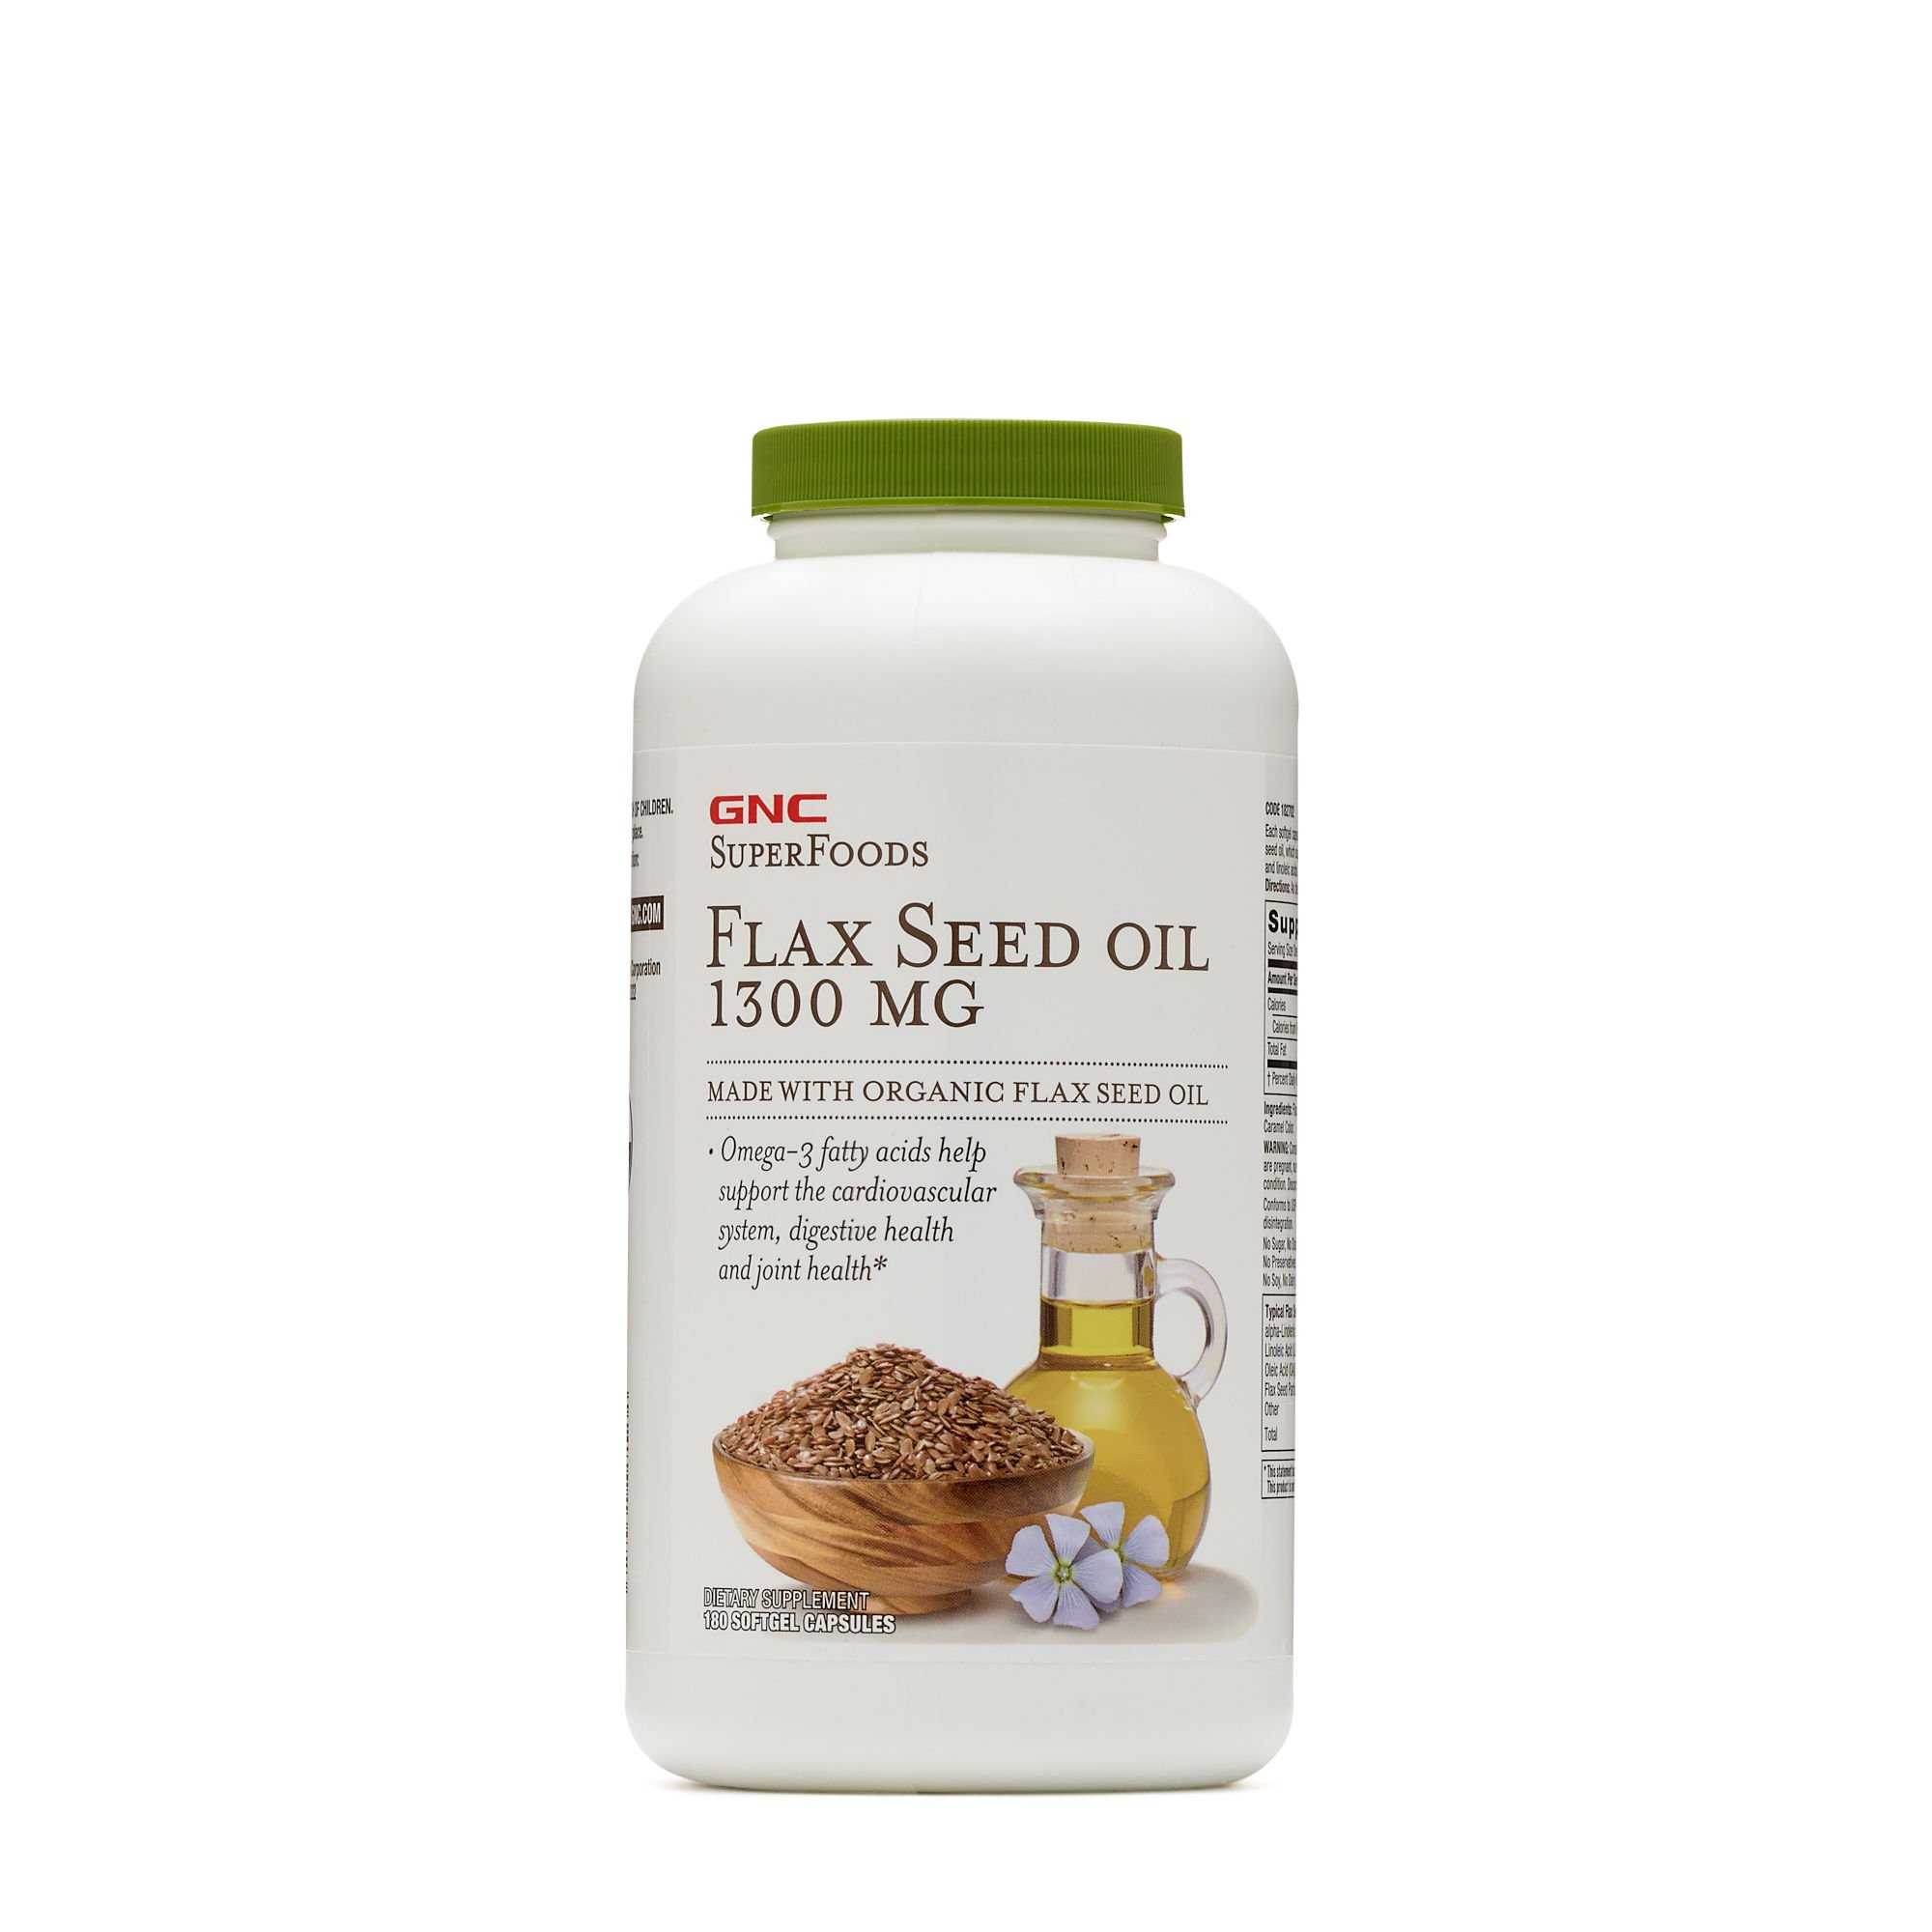 GNC SuperFoods Flax Seed Oil 1300 MG